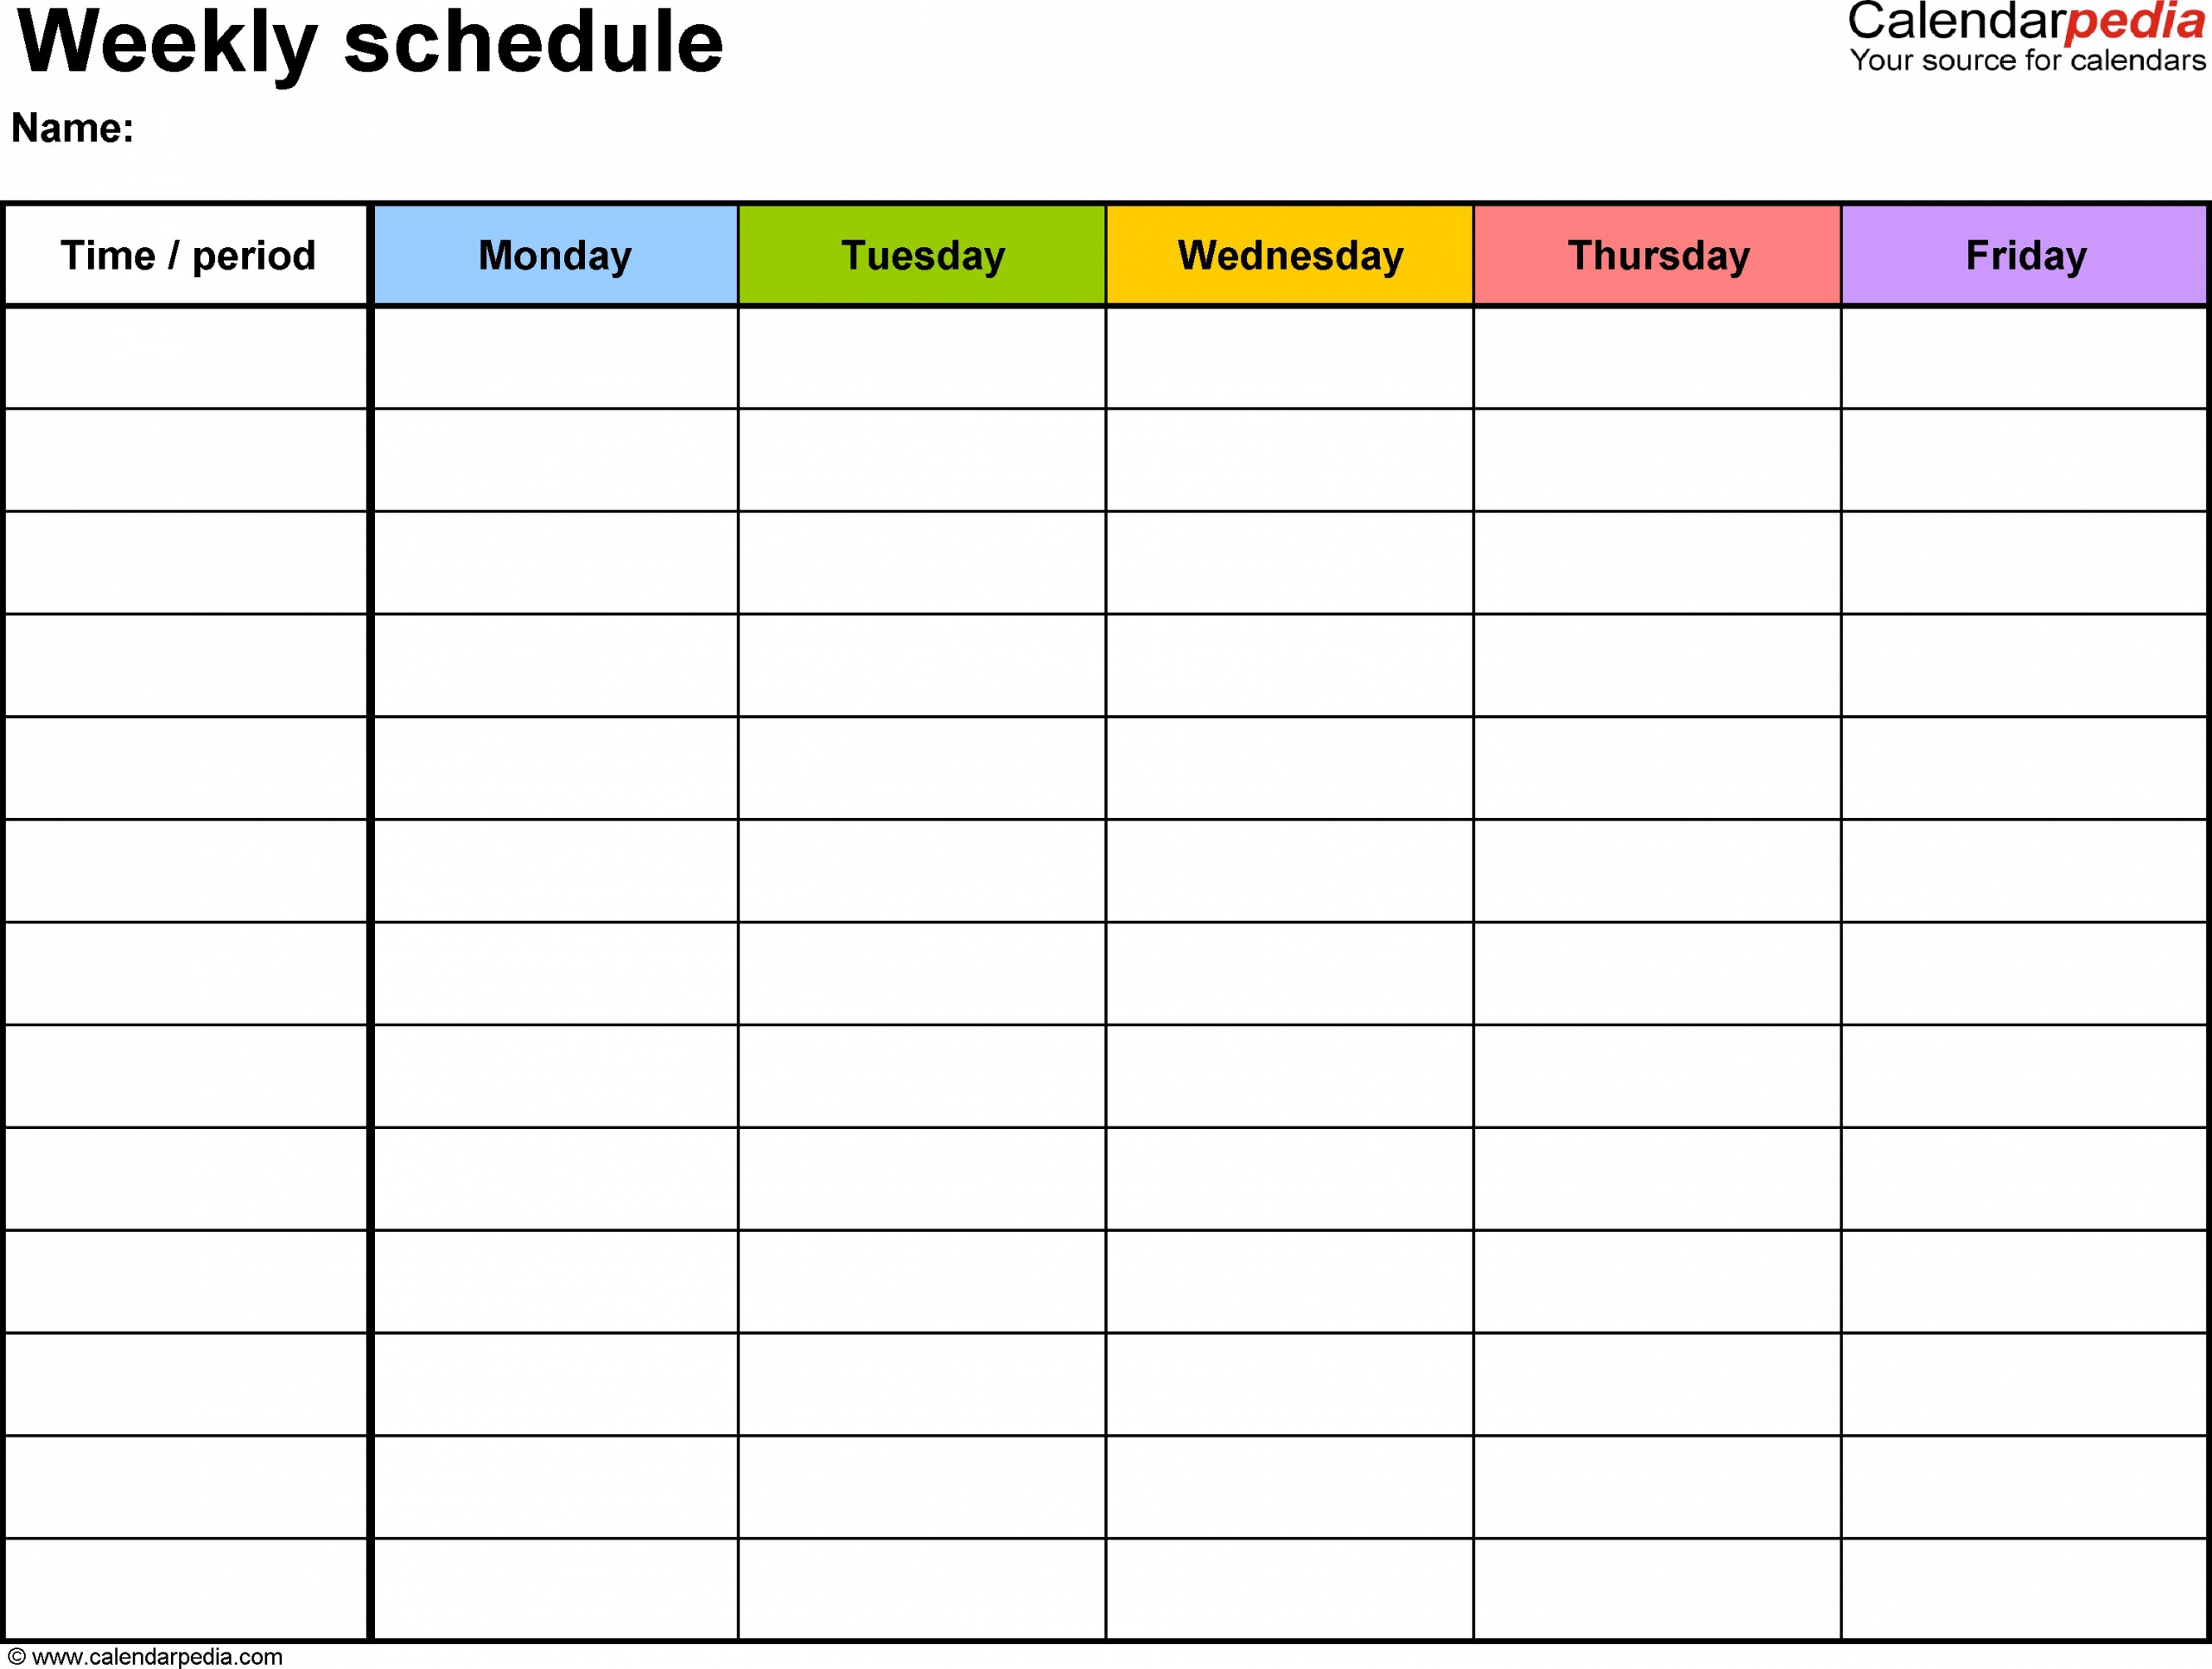 Monday Friday Calendar In 2020 | Daily Schedule Template